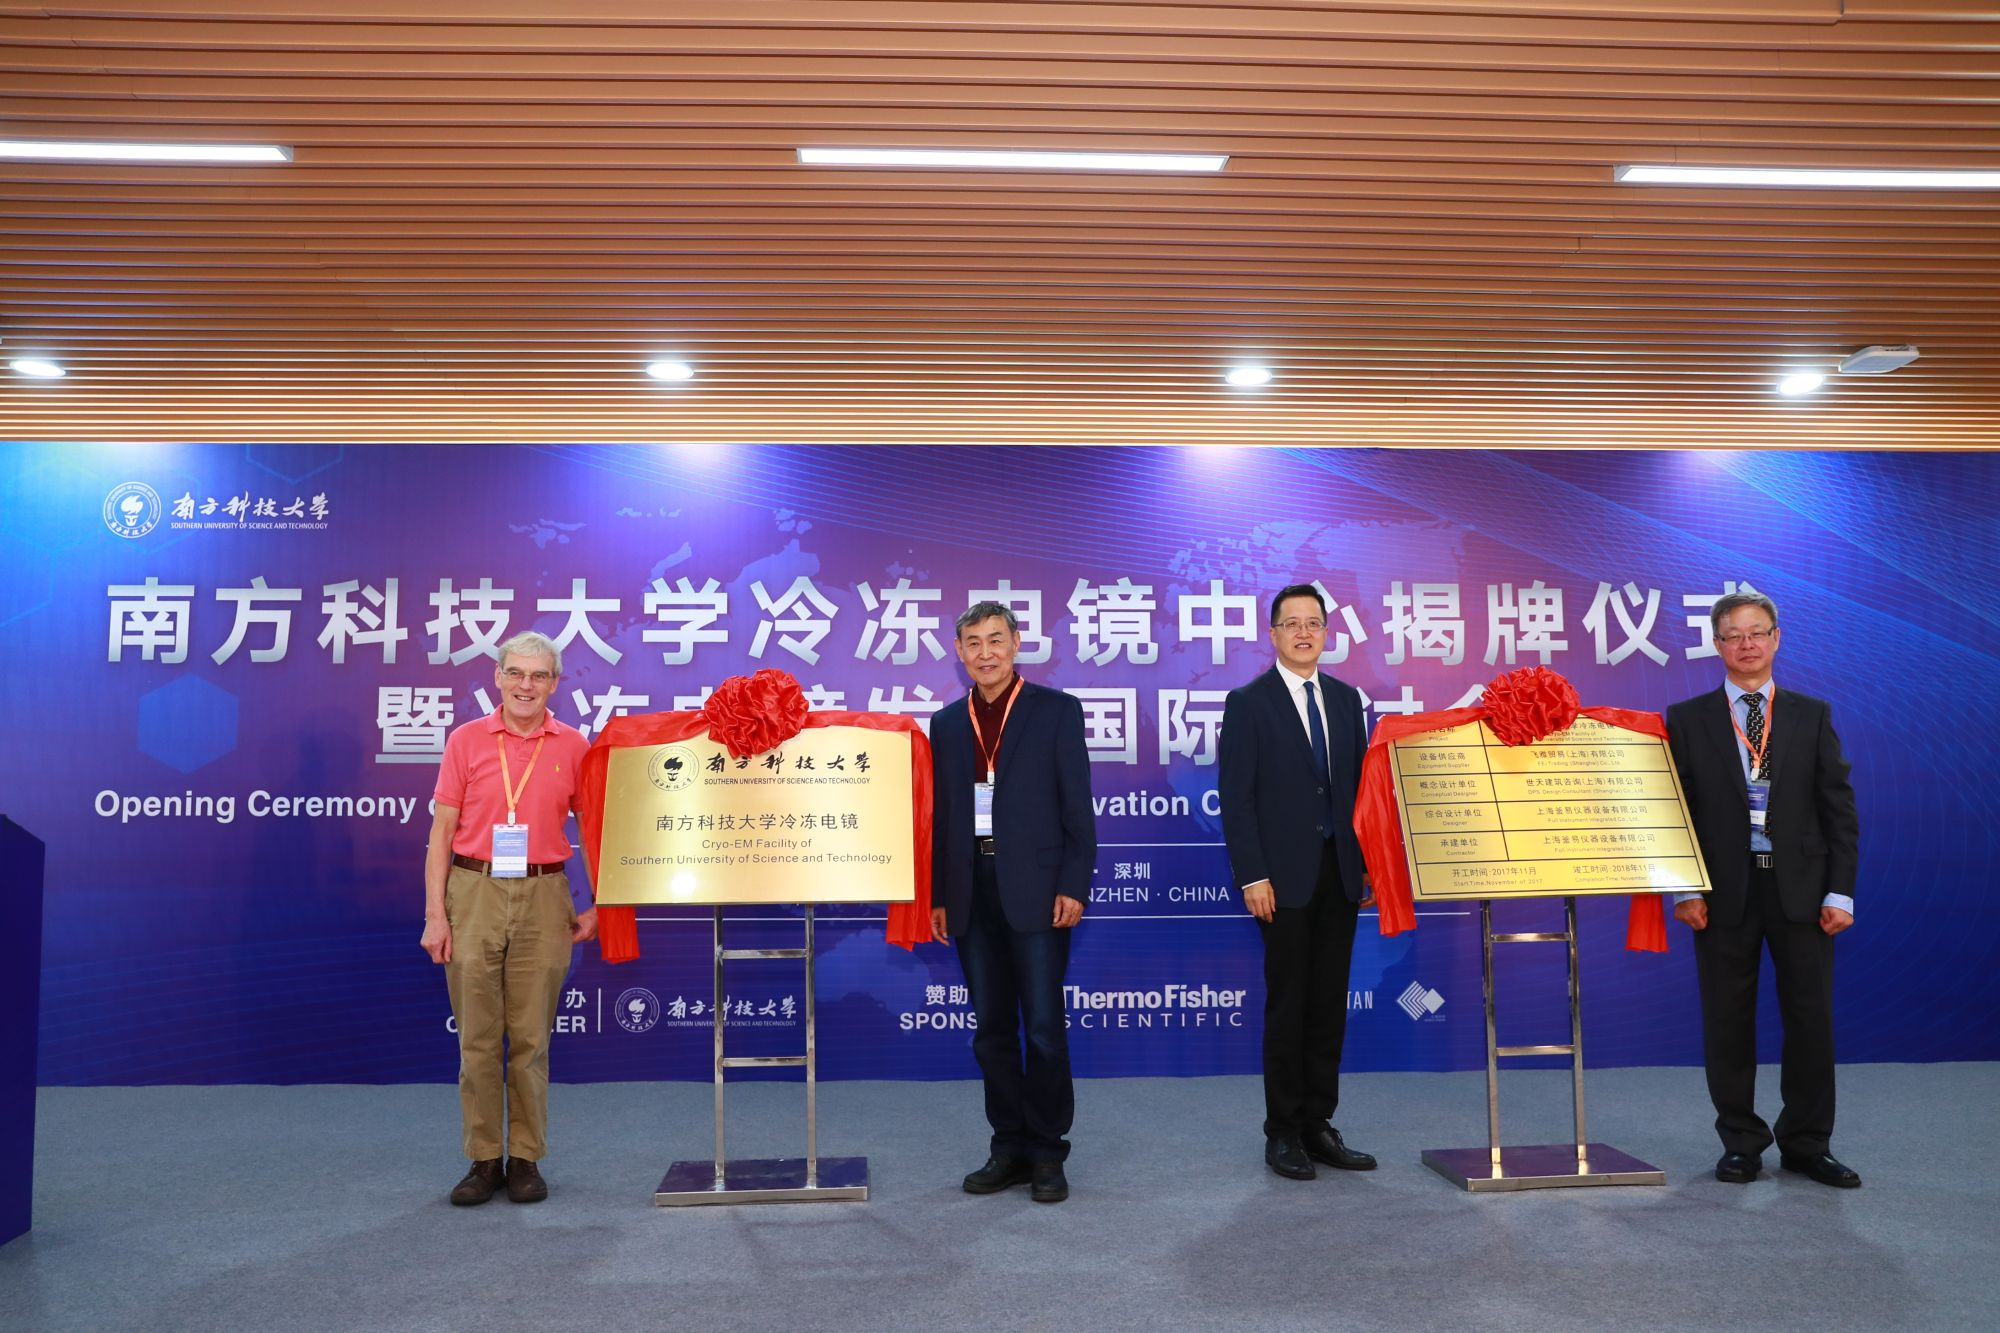 SUSTech Cryo-Electron Microscopy Center Opens, Becomes Largest in China.